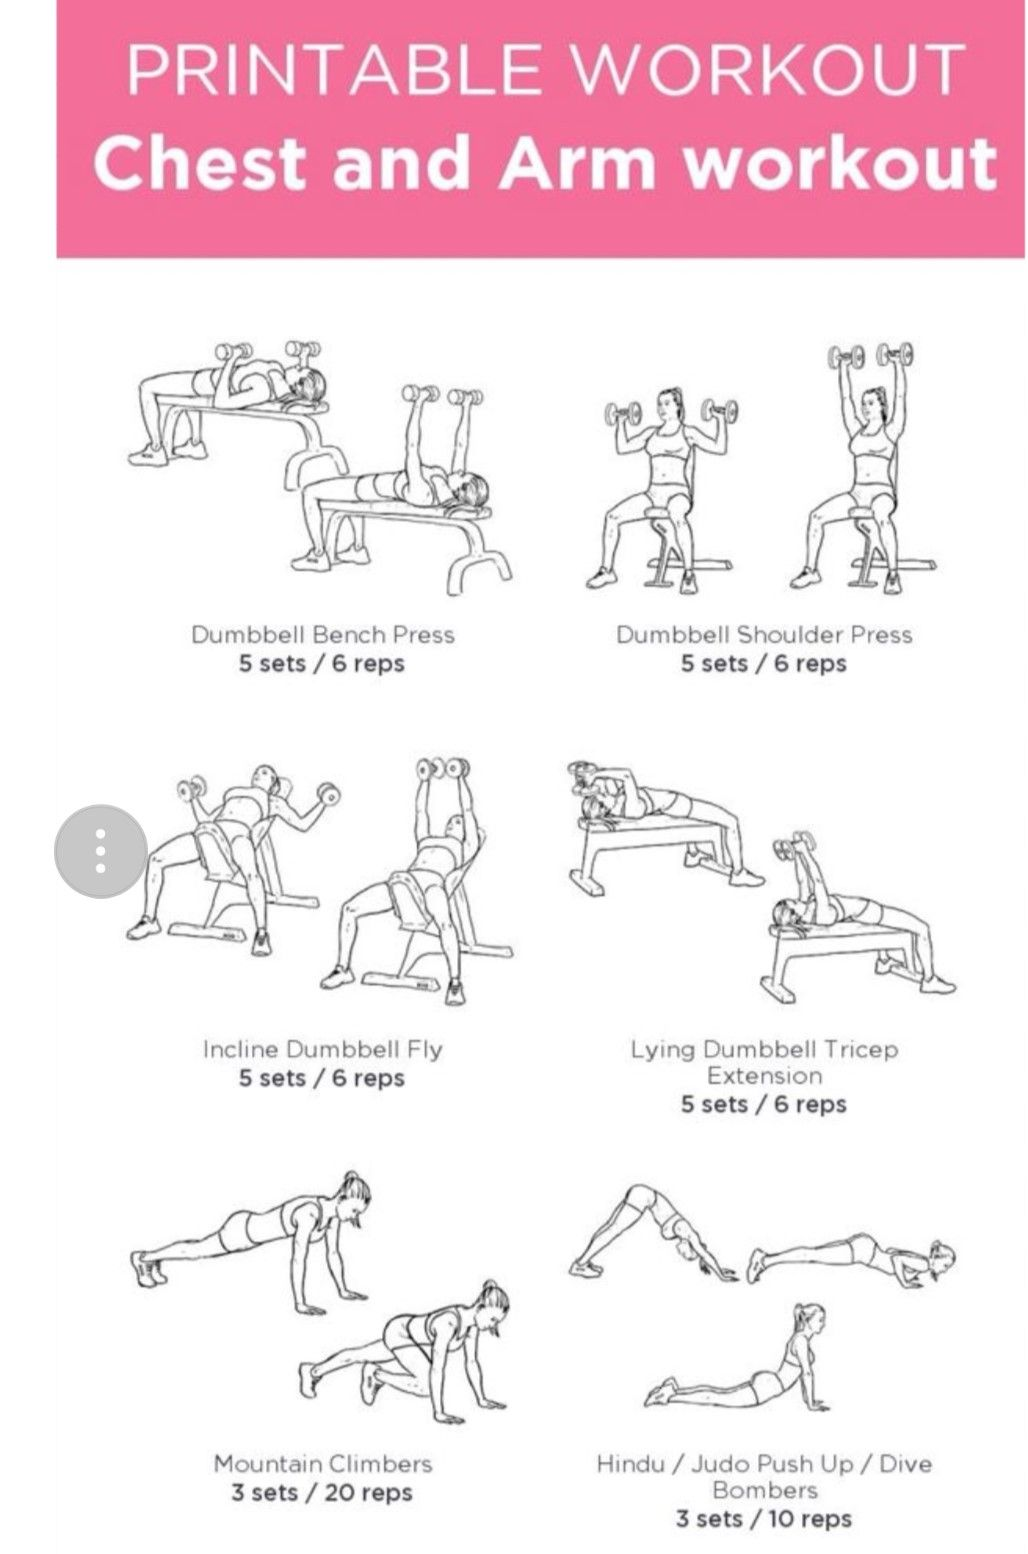 Pin by Christa Conrad on Fitness Chest and arm workout